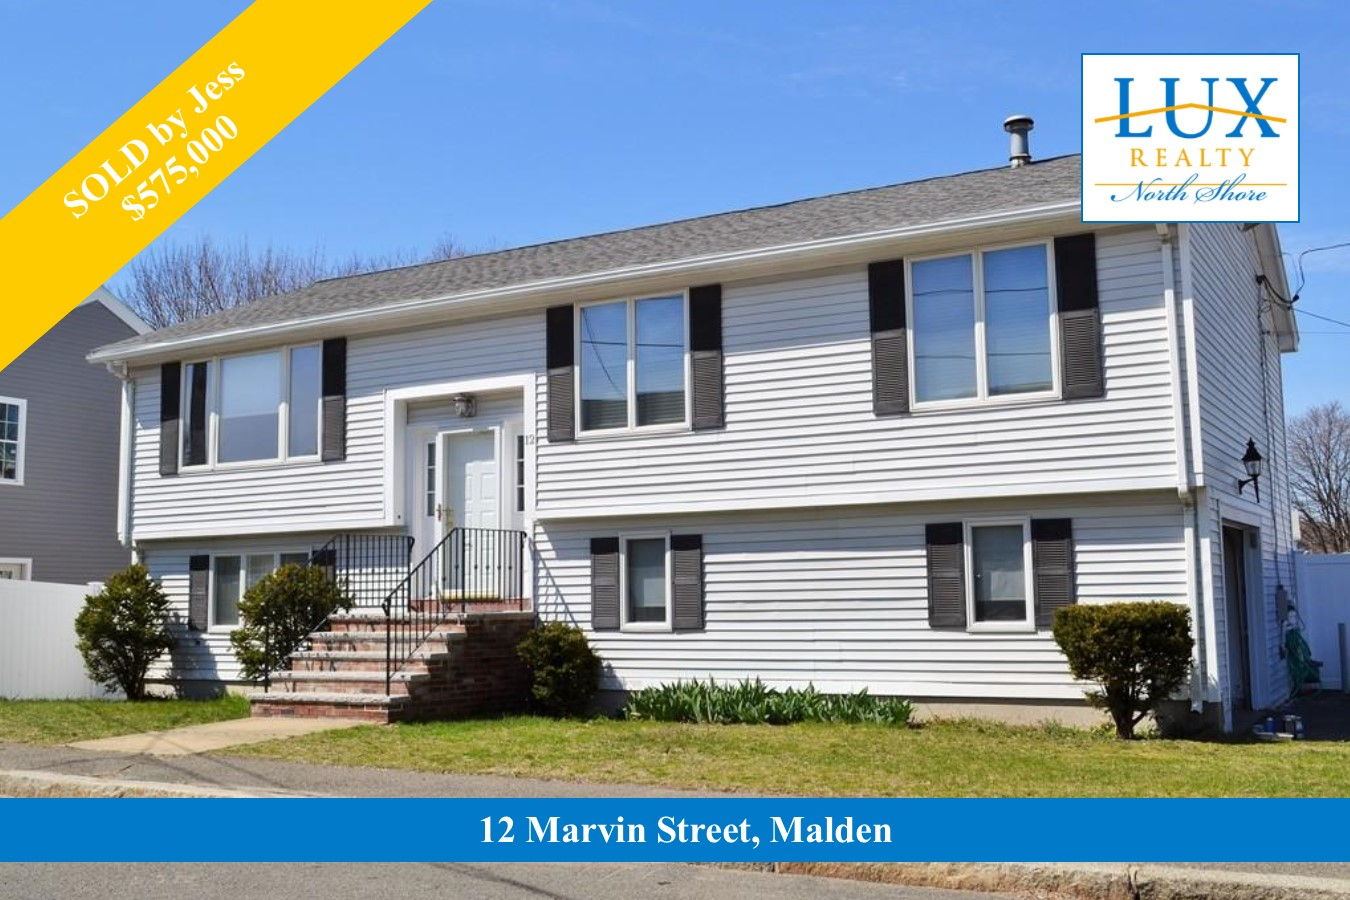 Malden Homes for Sale